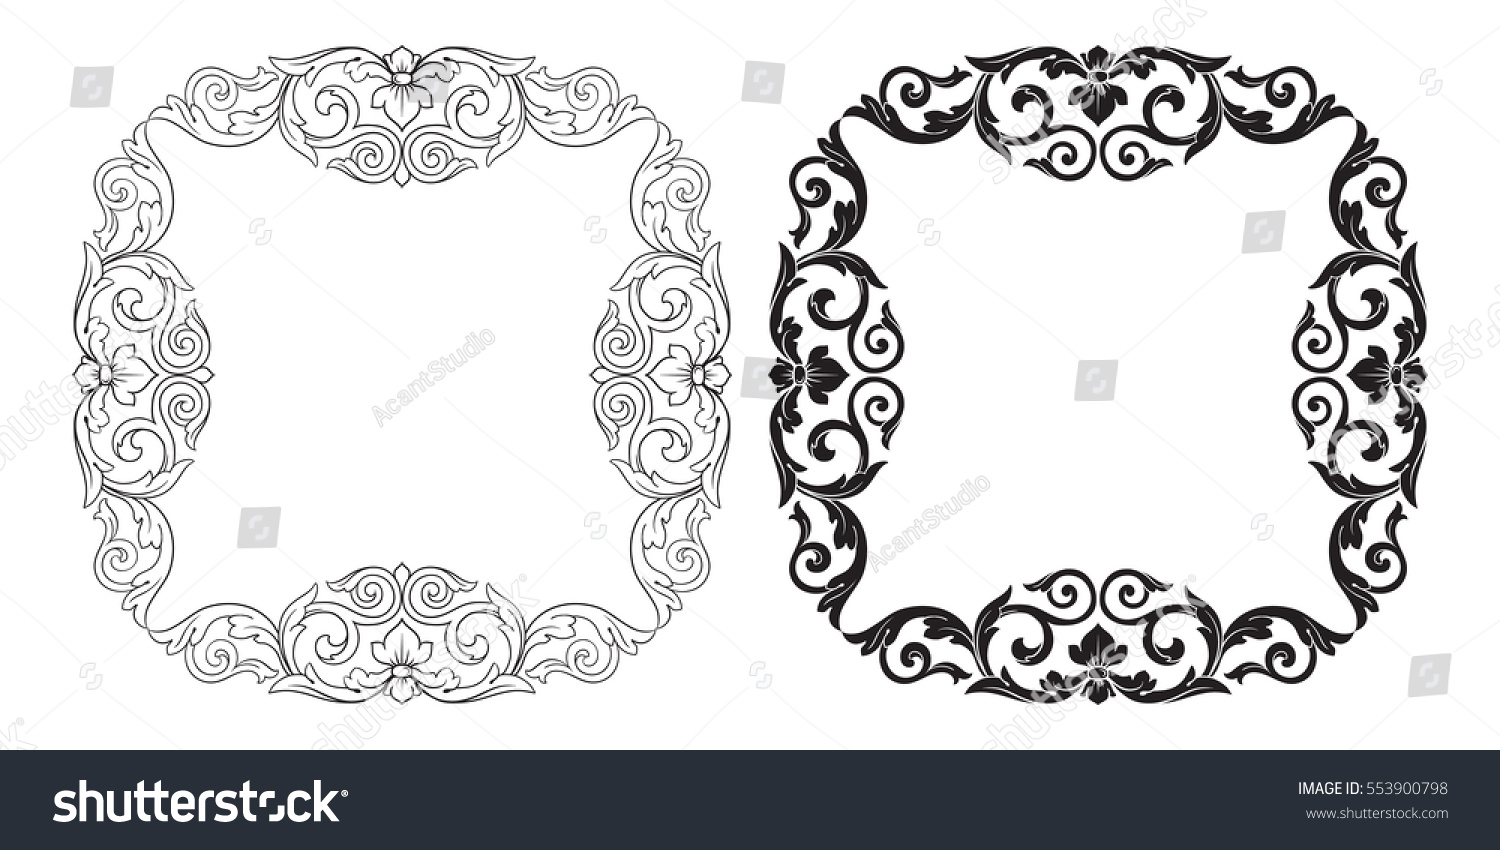 Baroque set vintage elements design decorative stock for Baroque architecture elements